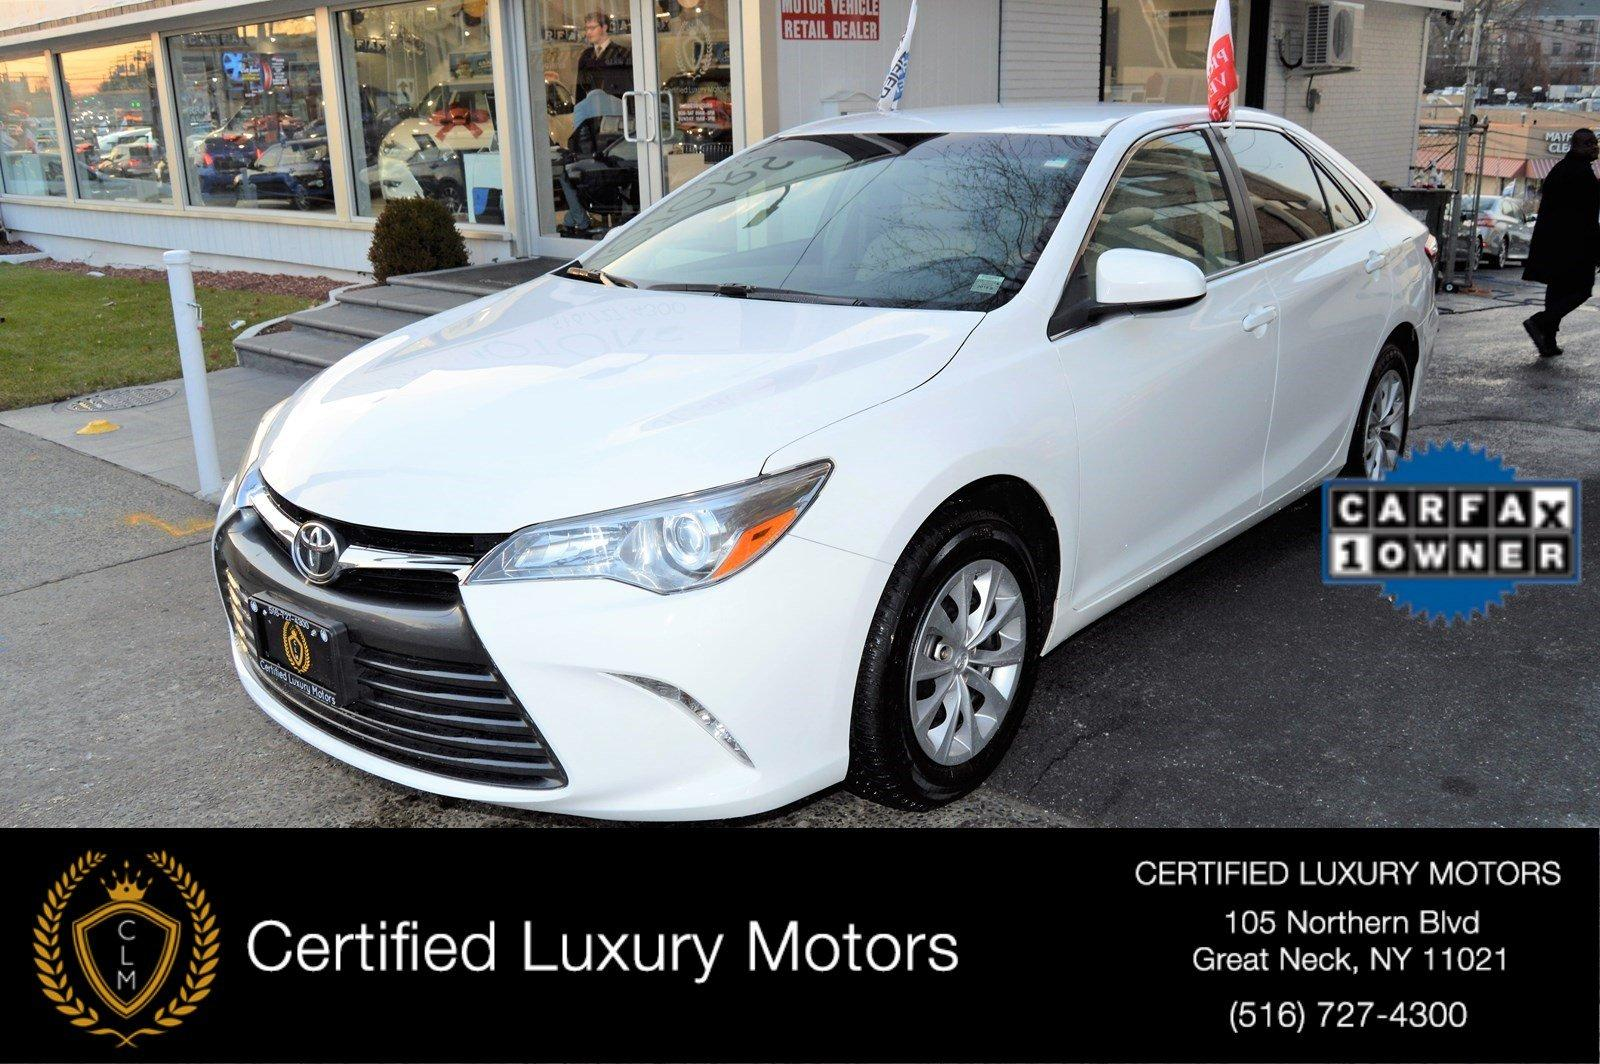 2015 toyota camry le stock 0813 for sale near great neck ny ny toyota dealer. Black Bedroom Furniture Sets. Home Design Ideas